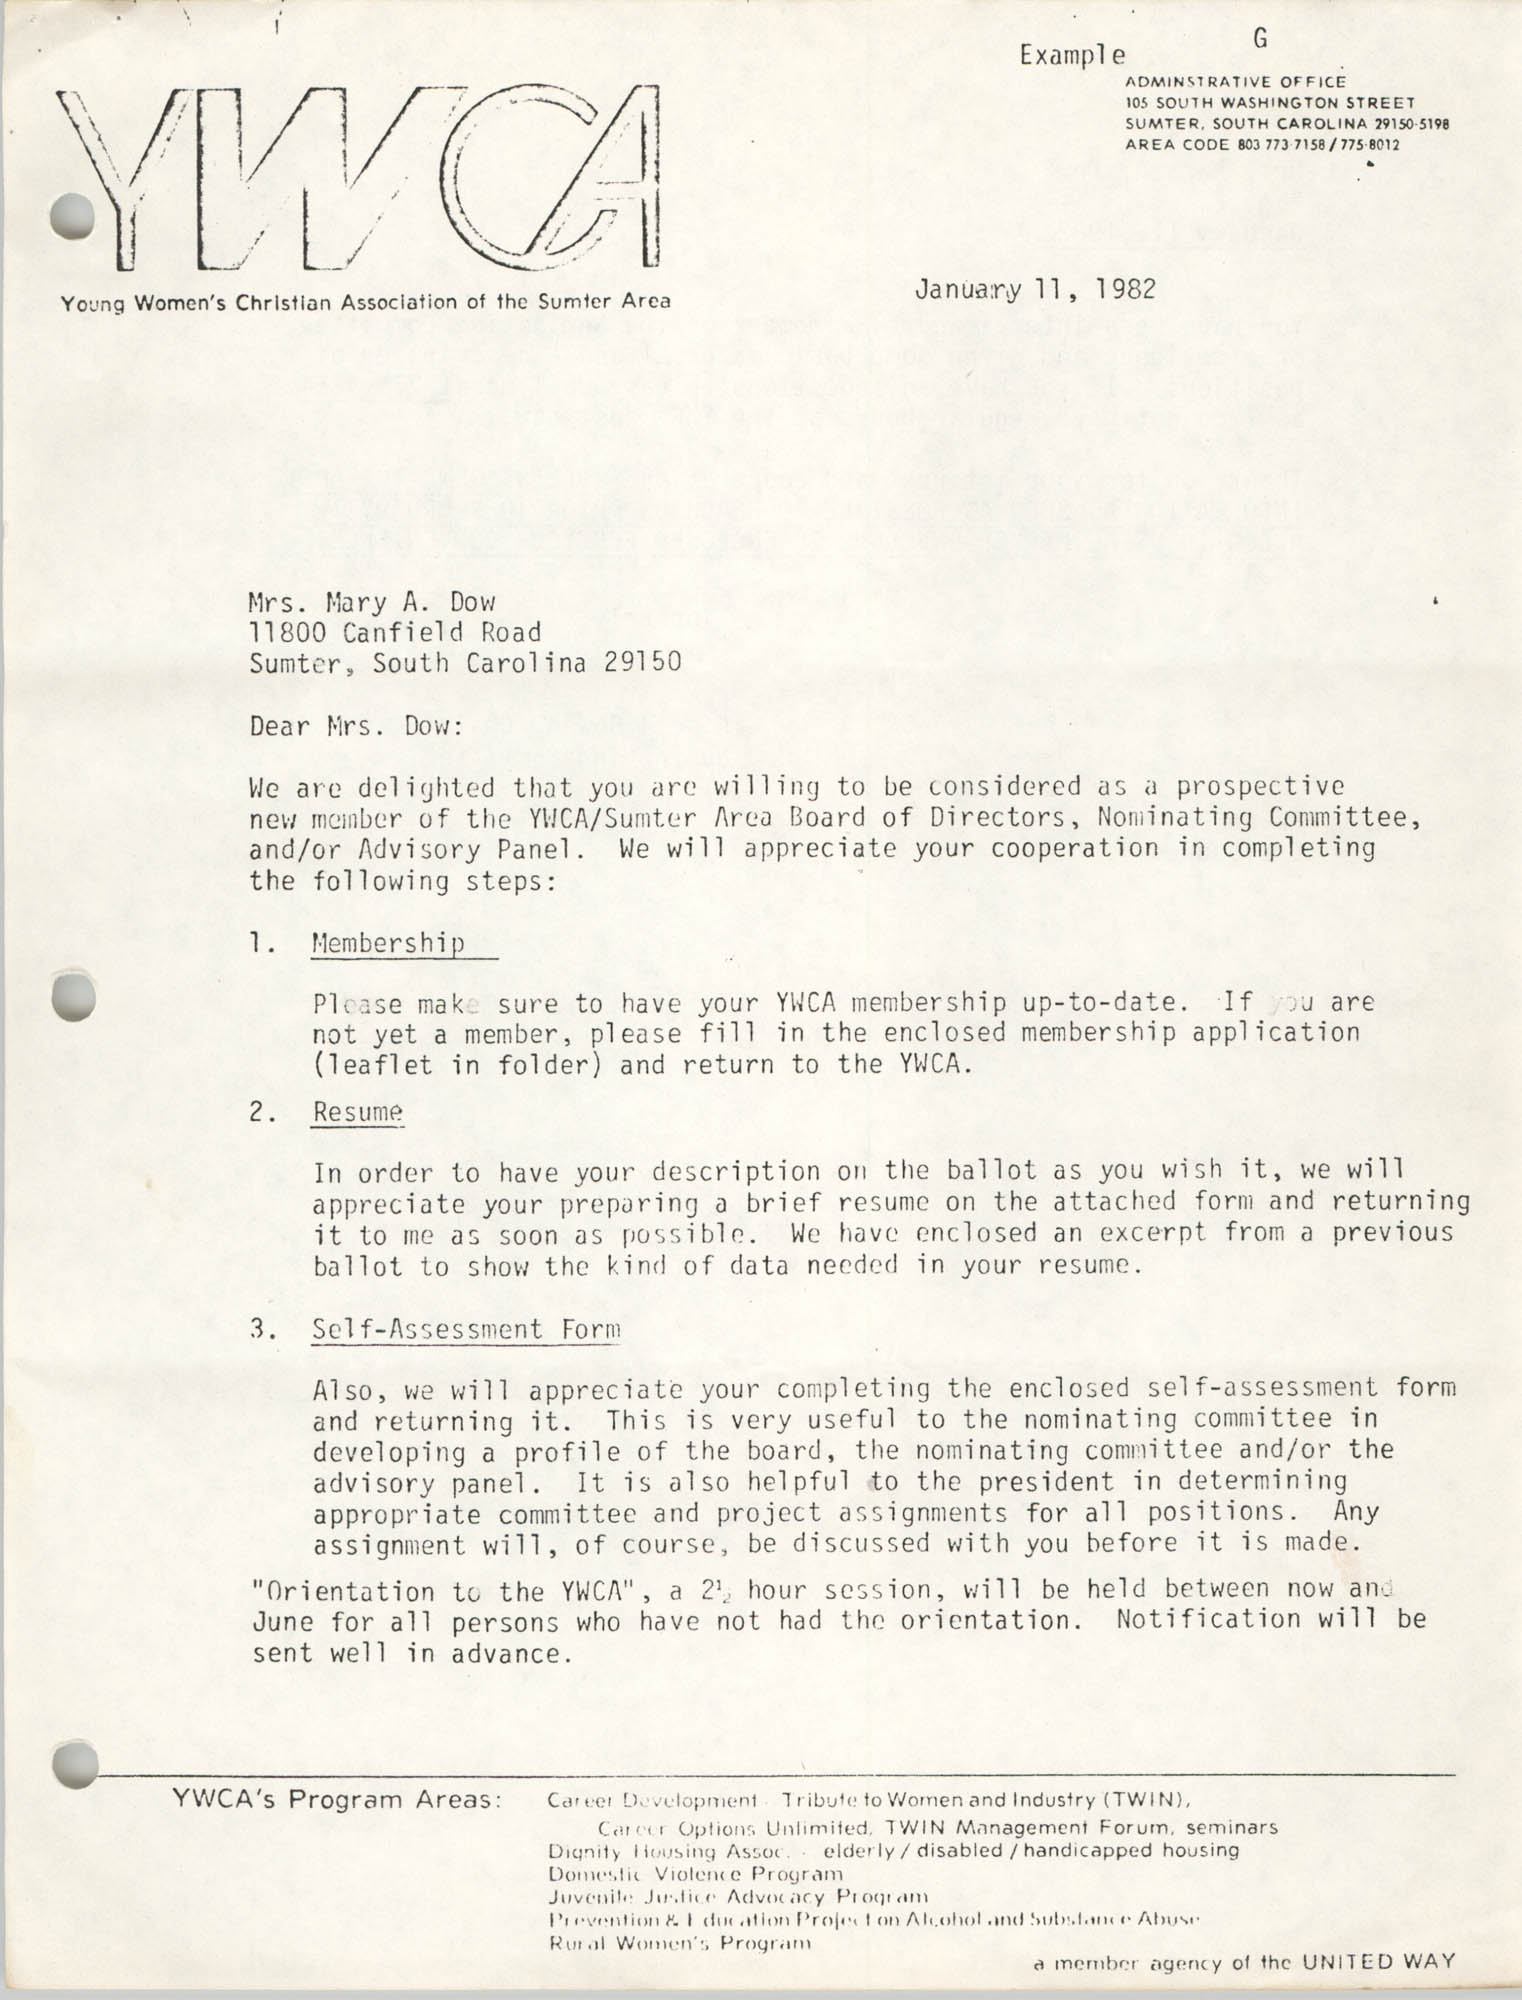 Y.W.C.A. of the Sumter Area Memorandum, January 11, 1982, Page 1